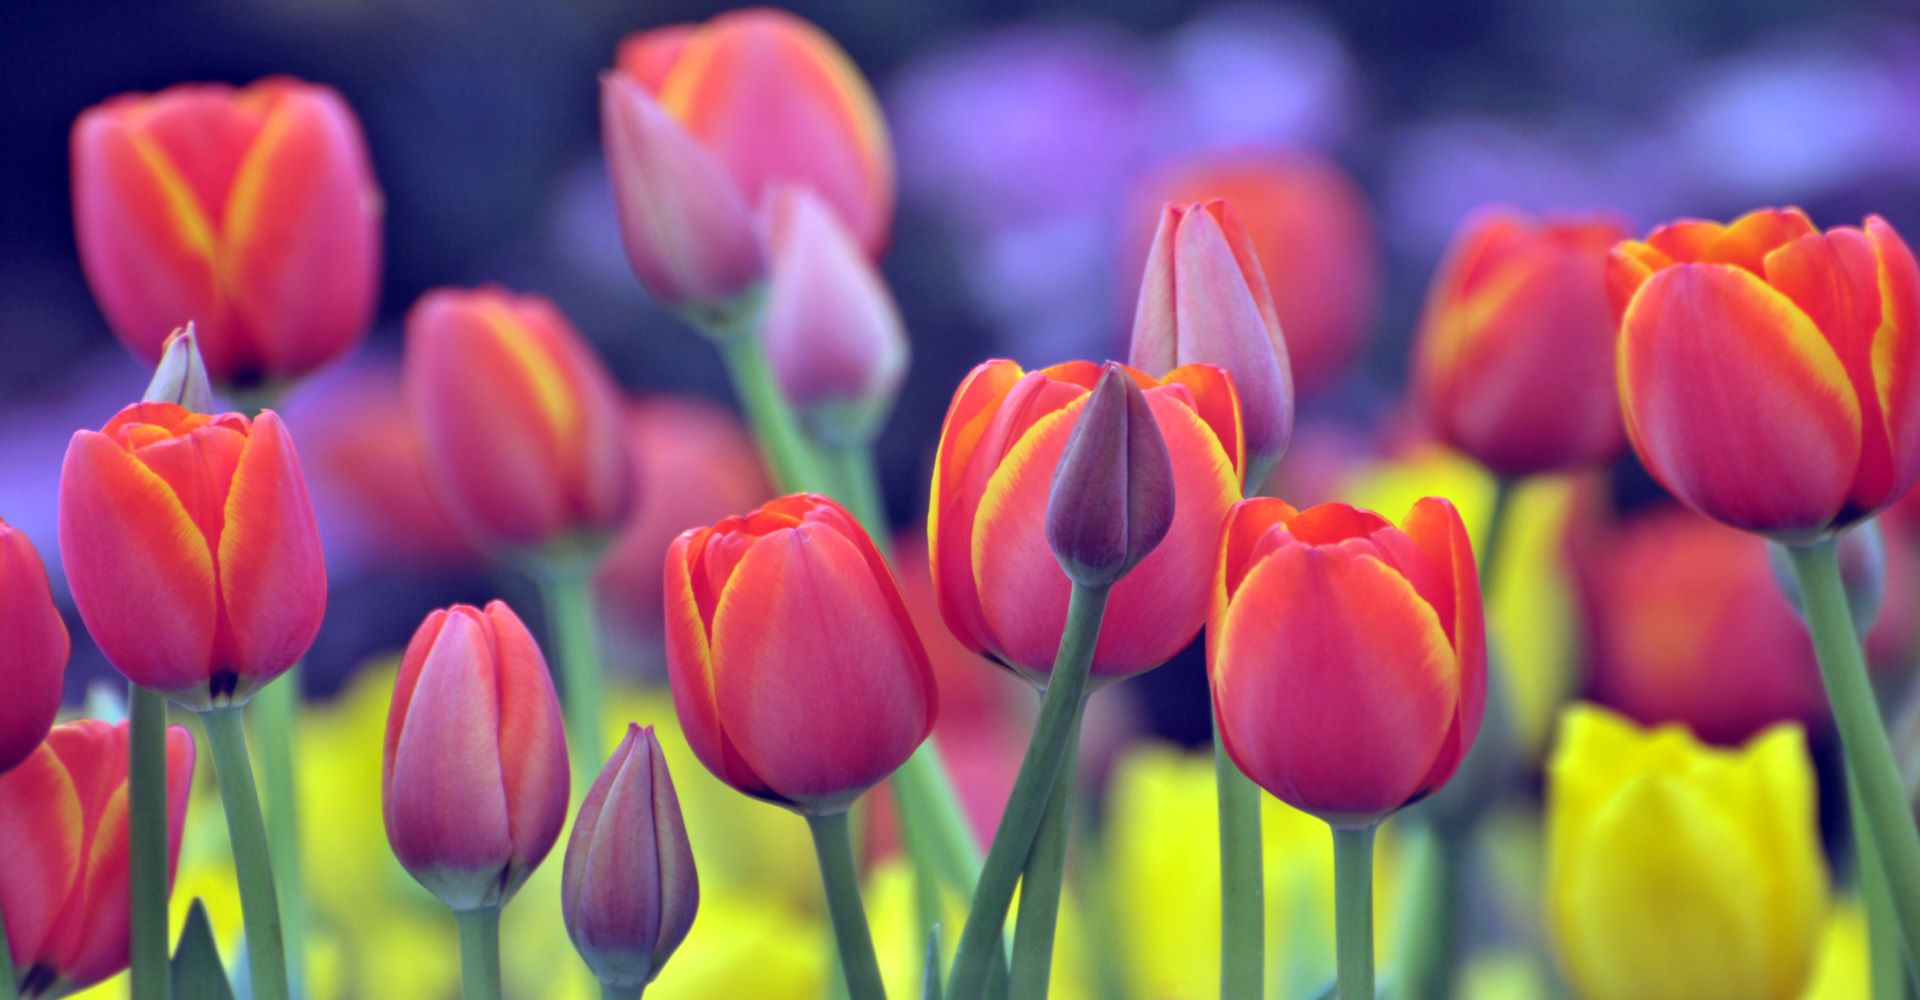 Tulips picture